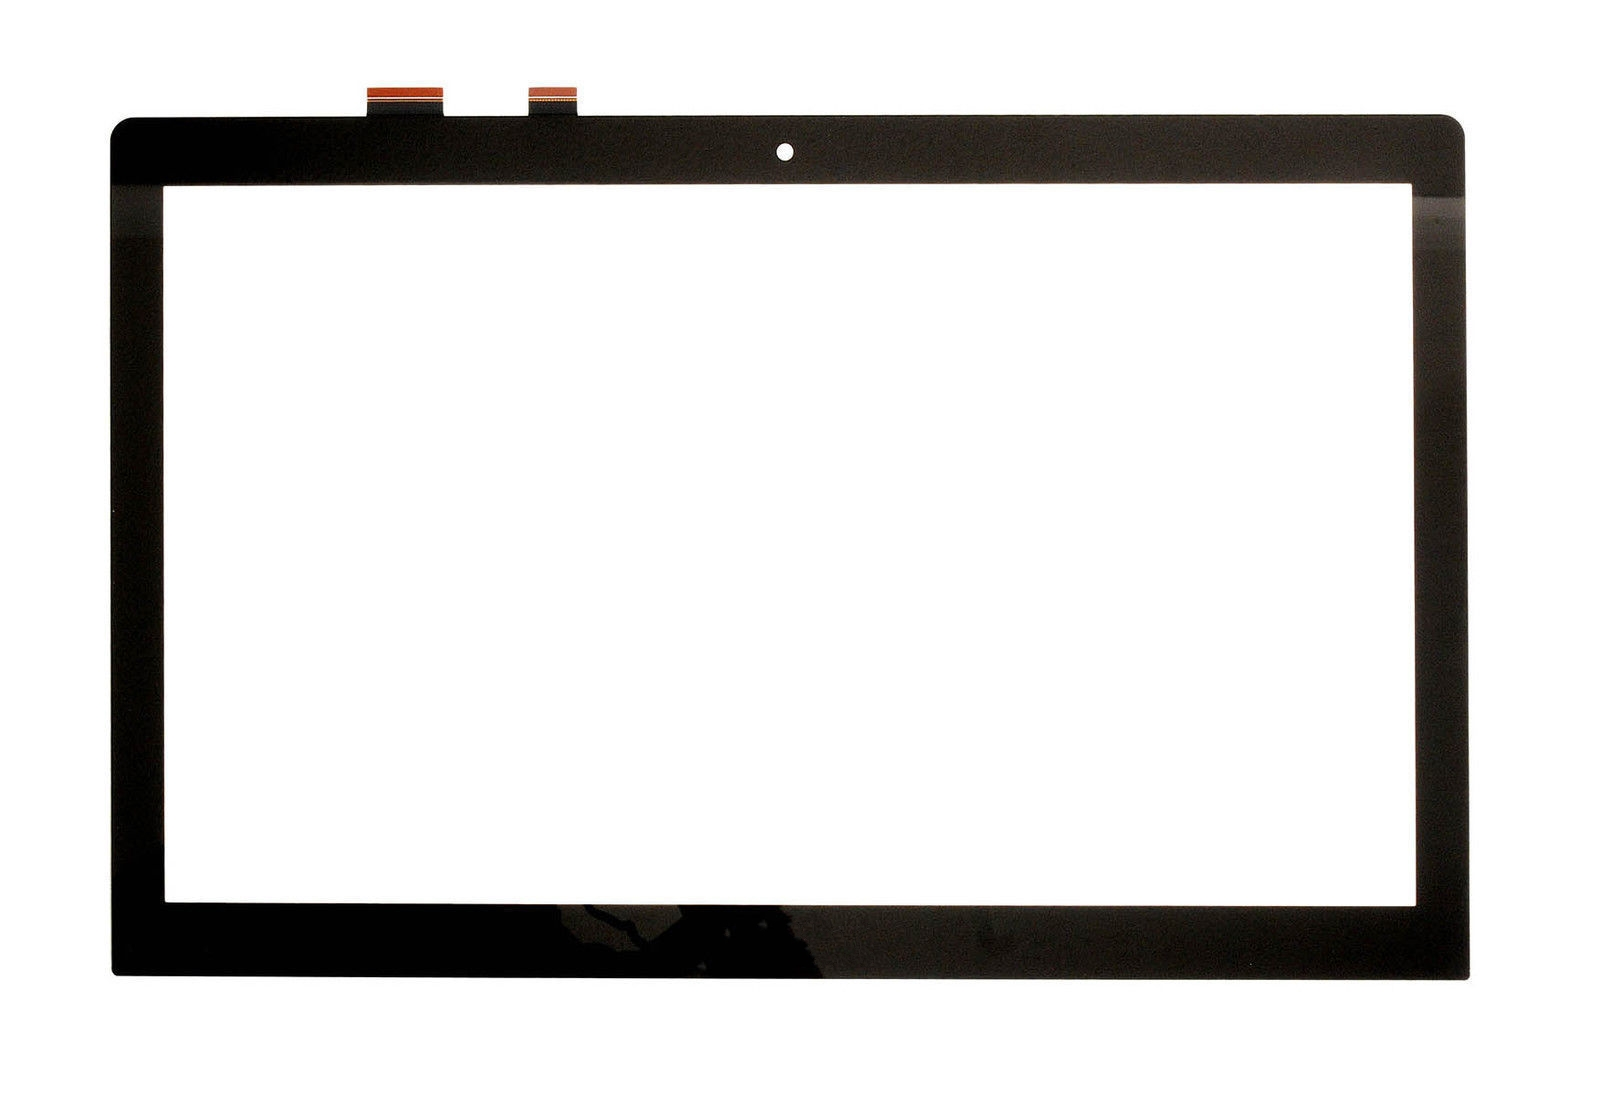 For Asus VivoBook S550 S550C S550CA S550CB S550CM Touch Screen Touch Panel Digitizer Glass Lens Repair Parts Replacement original 14 touch screen digitizer glass sensor lens panel replacement parts for lenovo flex 2 14 20404 20432 flex 2 14d 20376